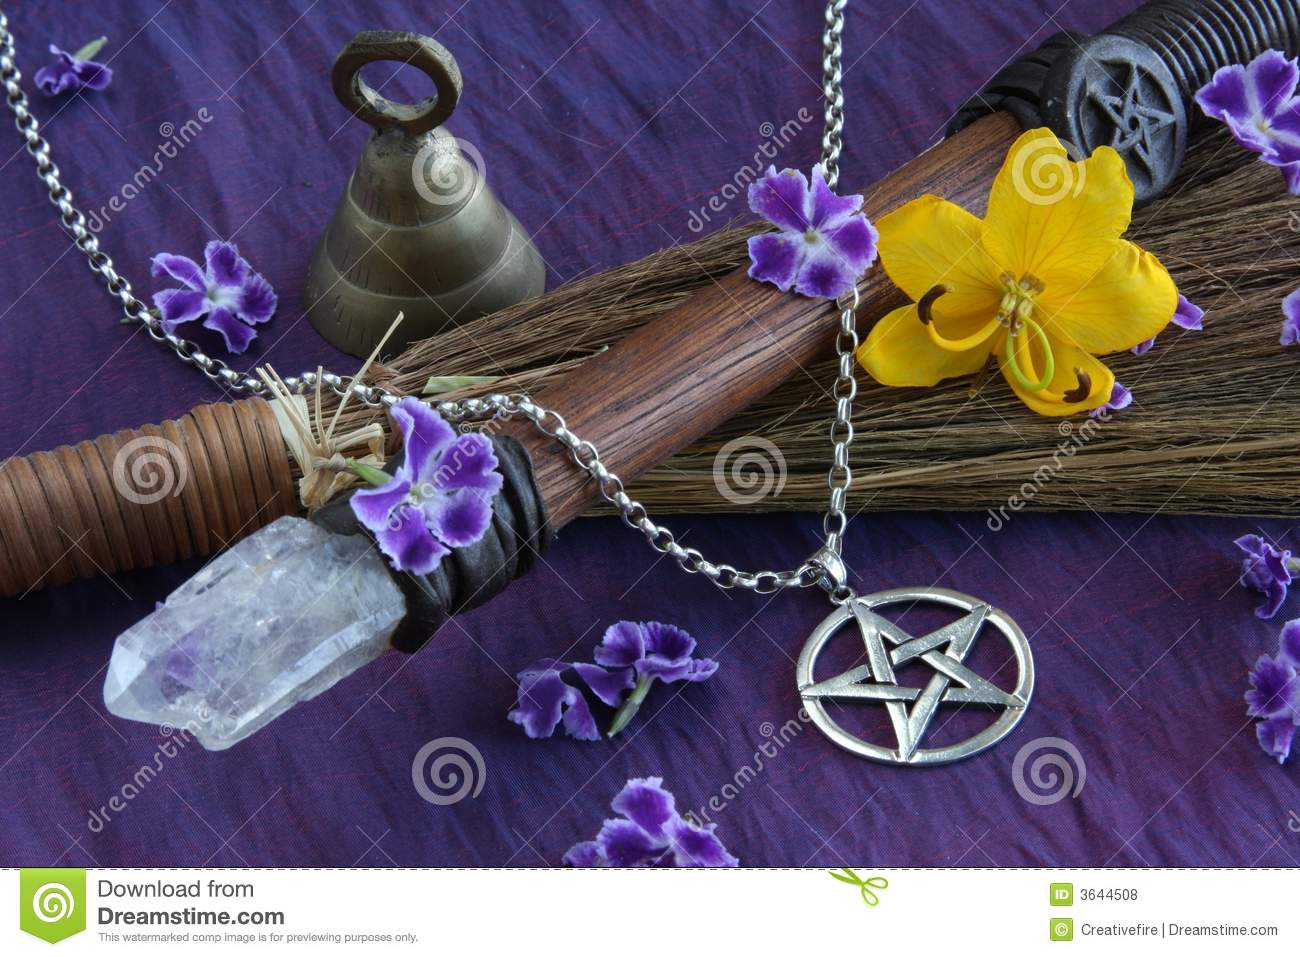 wiccan objects royalty free stock photos image 3644508